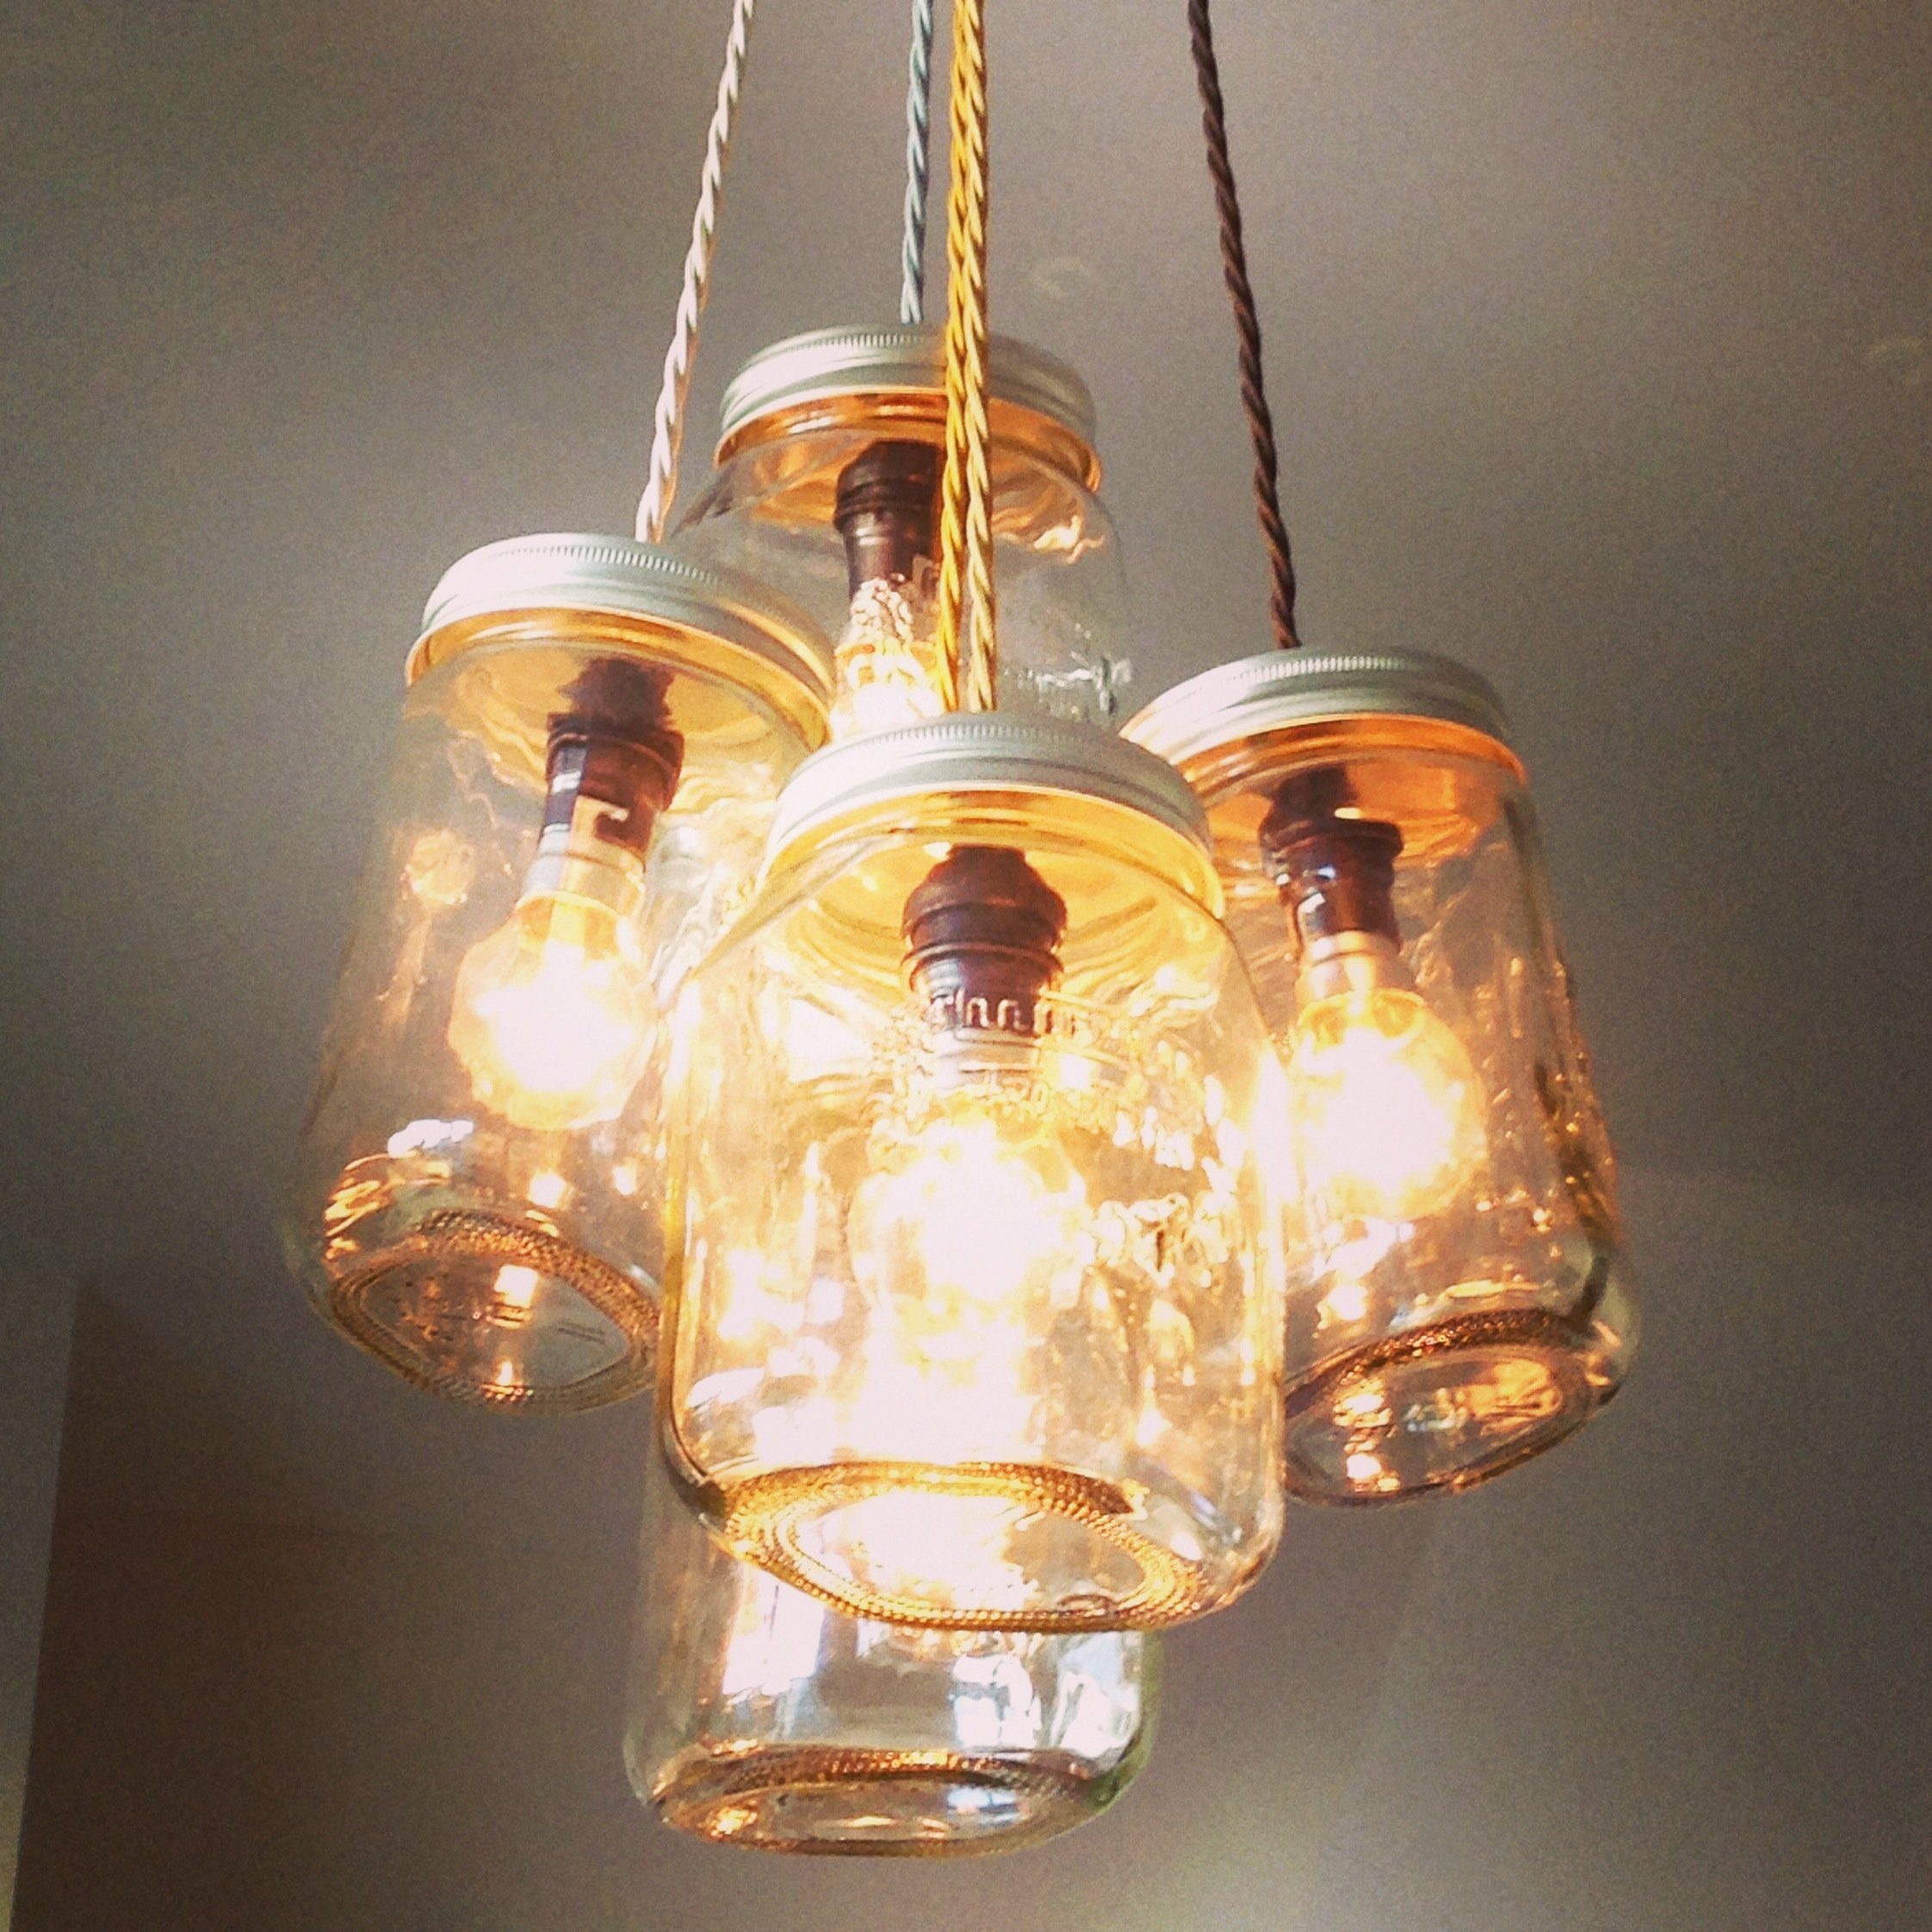 Jam jar chandellier vintage style with 5 lights